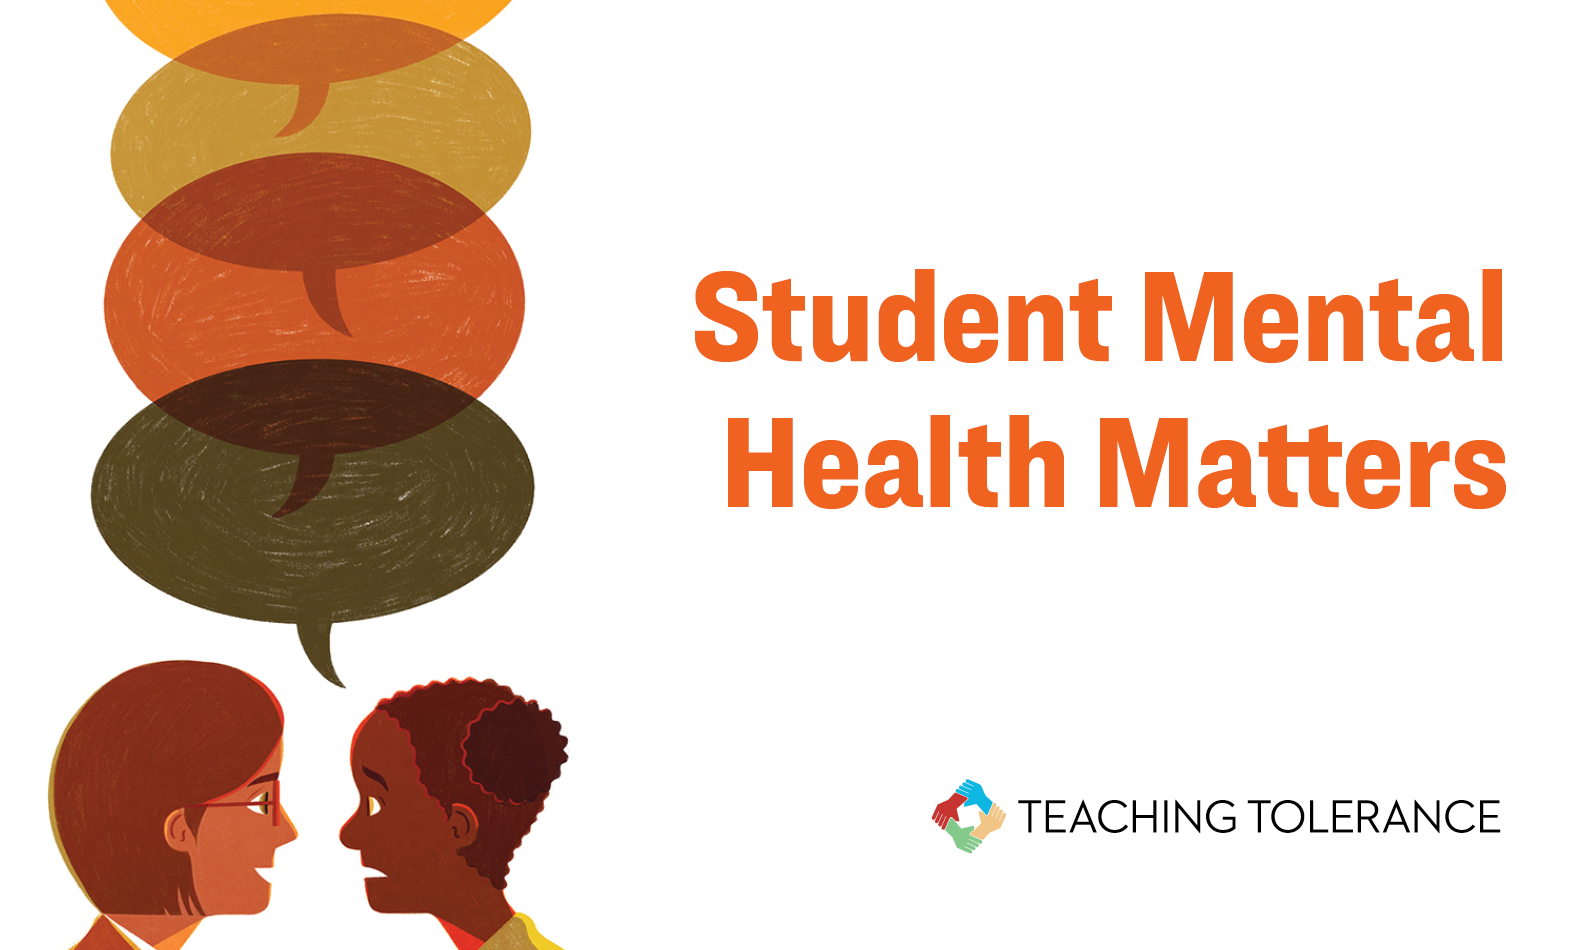 Student Mental Health tolerance image